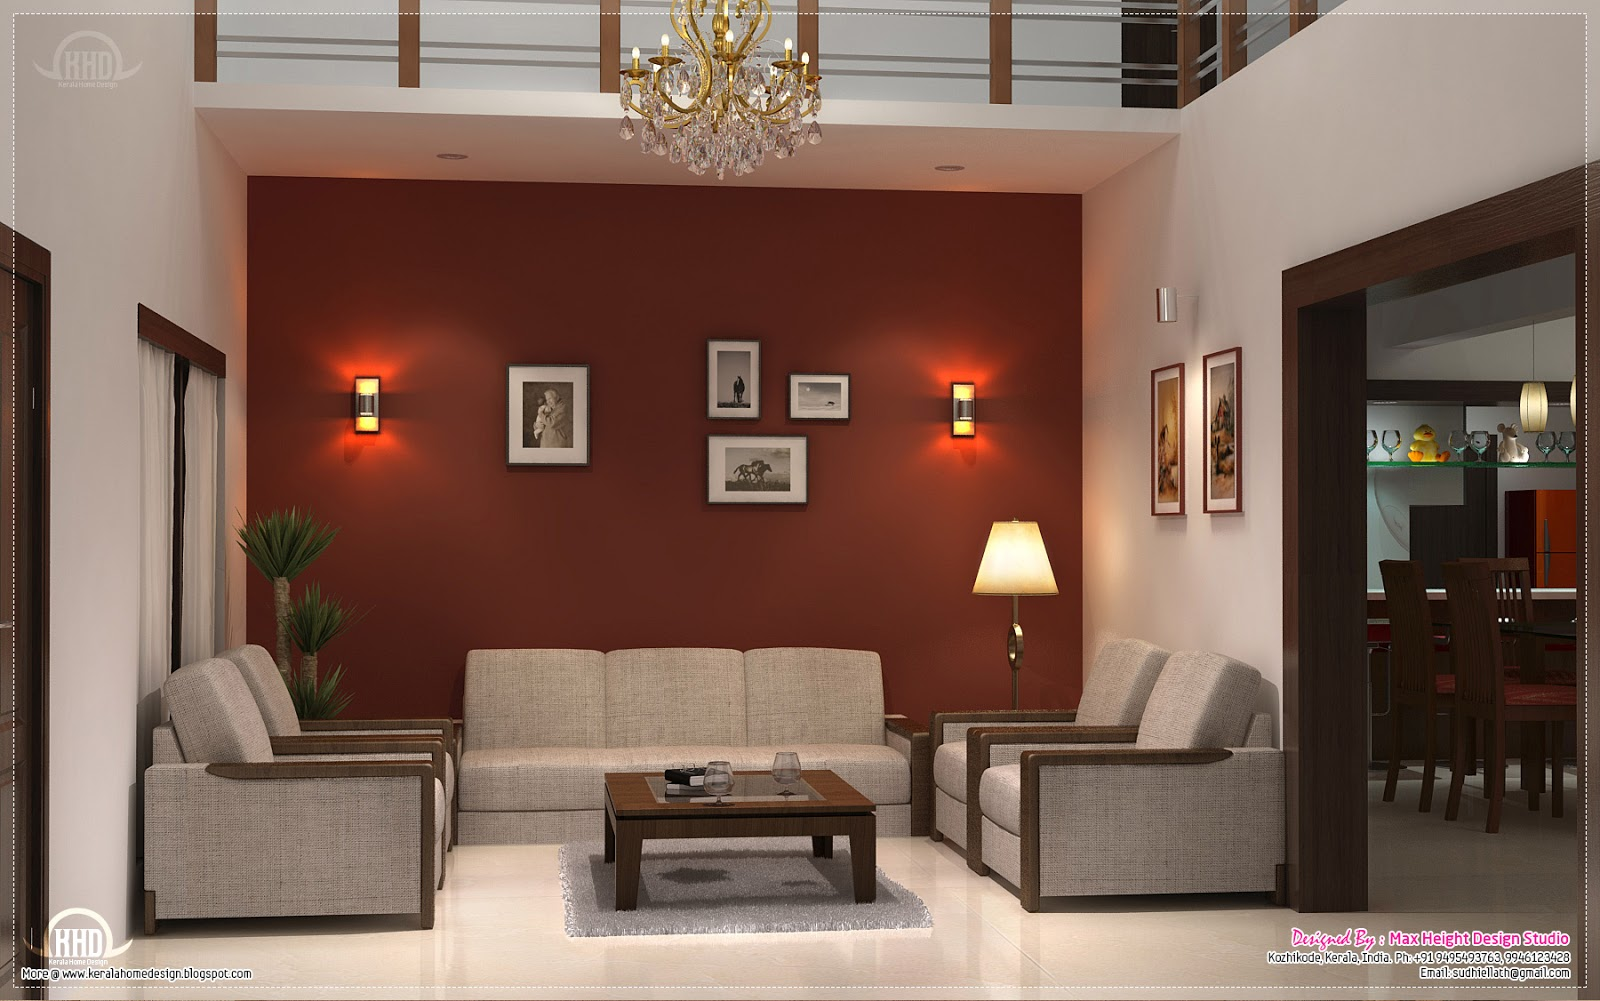 Home interior design ideas home kerala plans for Internal house design ideas